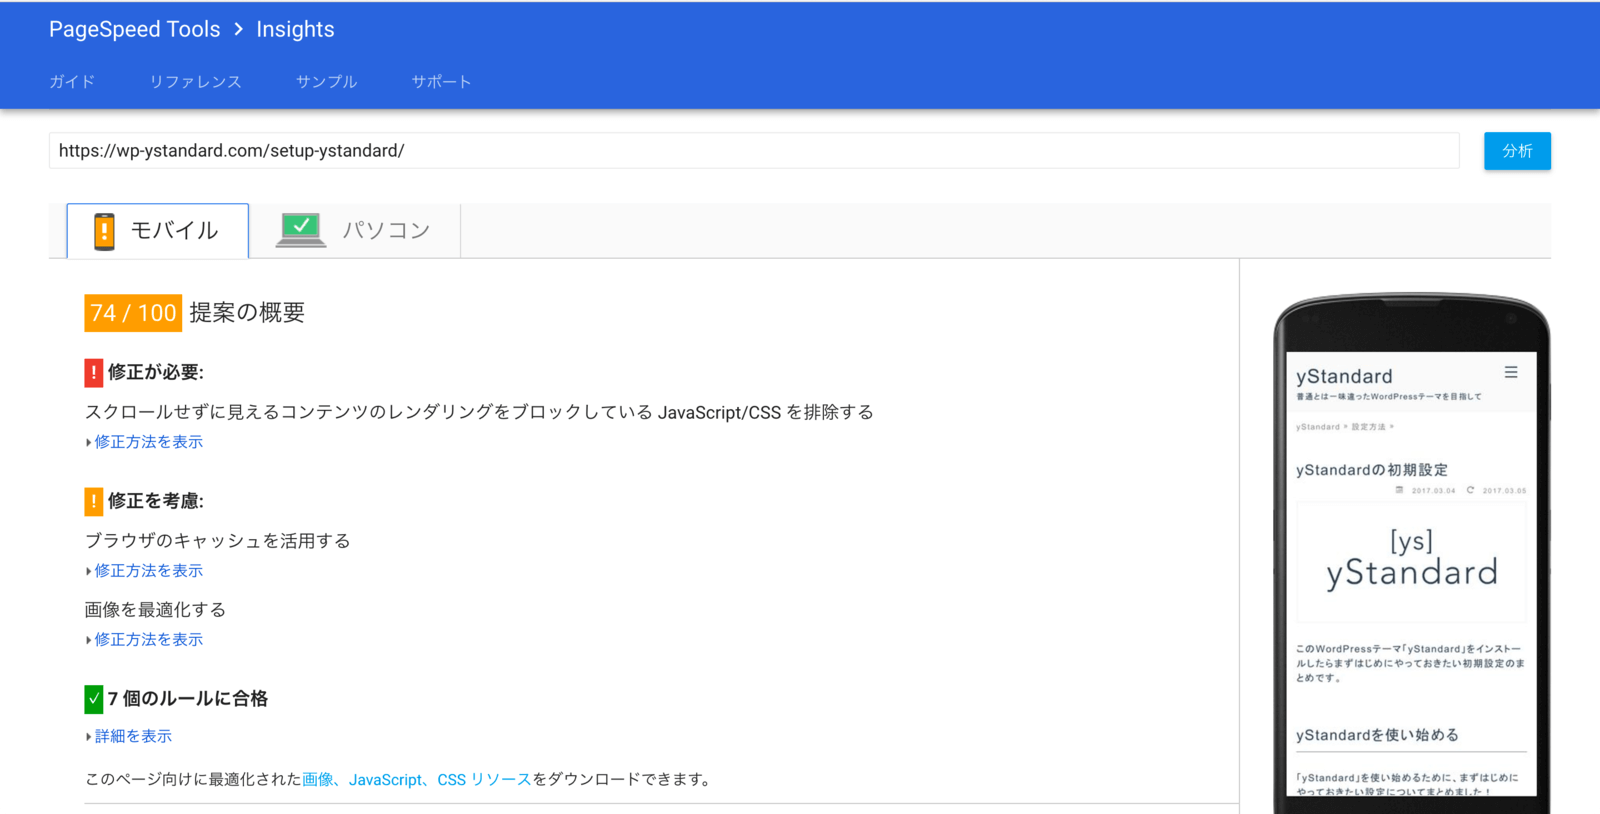 PageSpeed Insights スマホでの得点